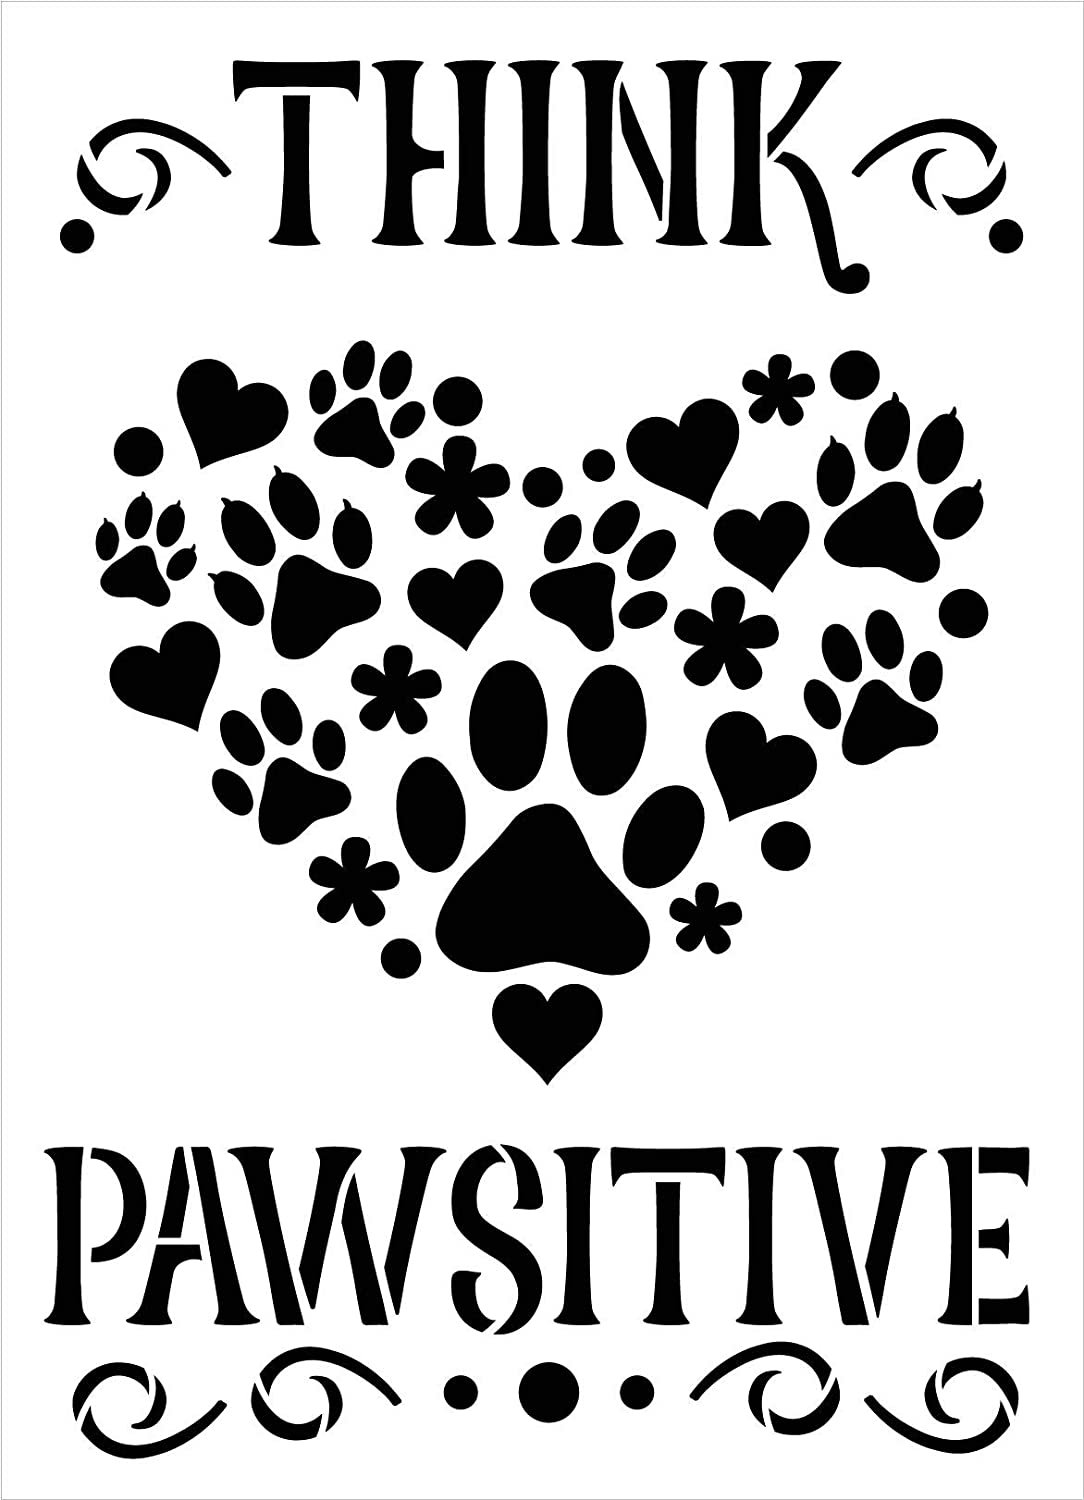 Think Pawsitive Stencil by StudioR12 | DIY Pet Lover Dog Home Decor | Craft & Paint Wood Sign | Reusable Mylar Template | Positive Pawprint Flower Heart Gift | Select Size